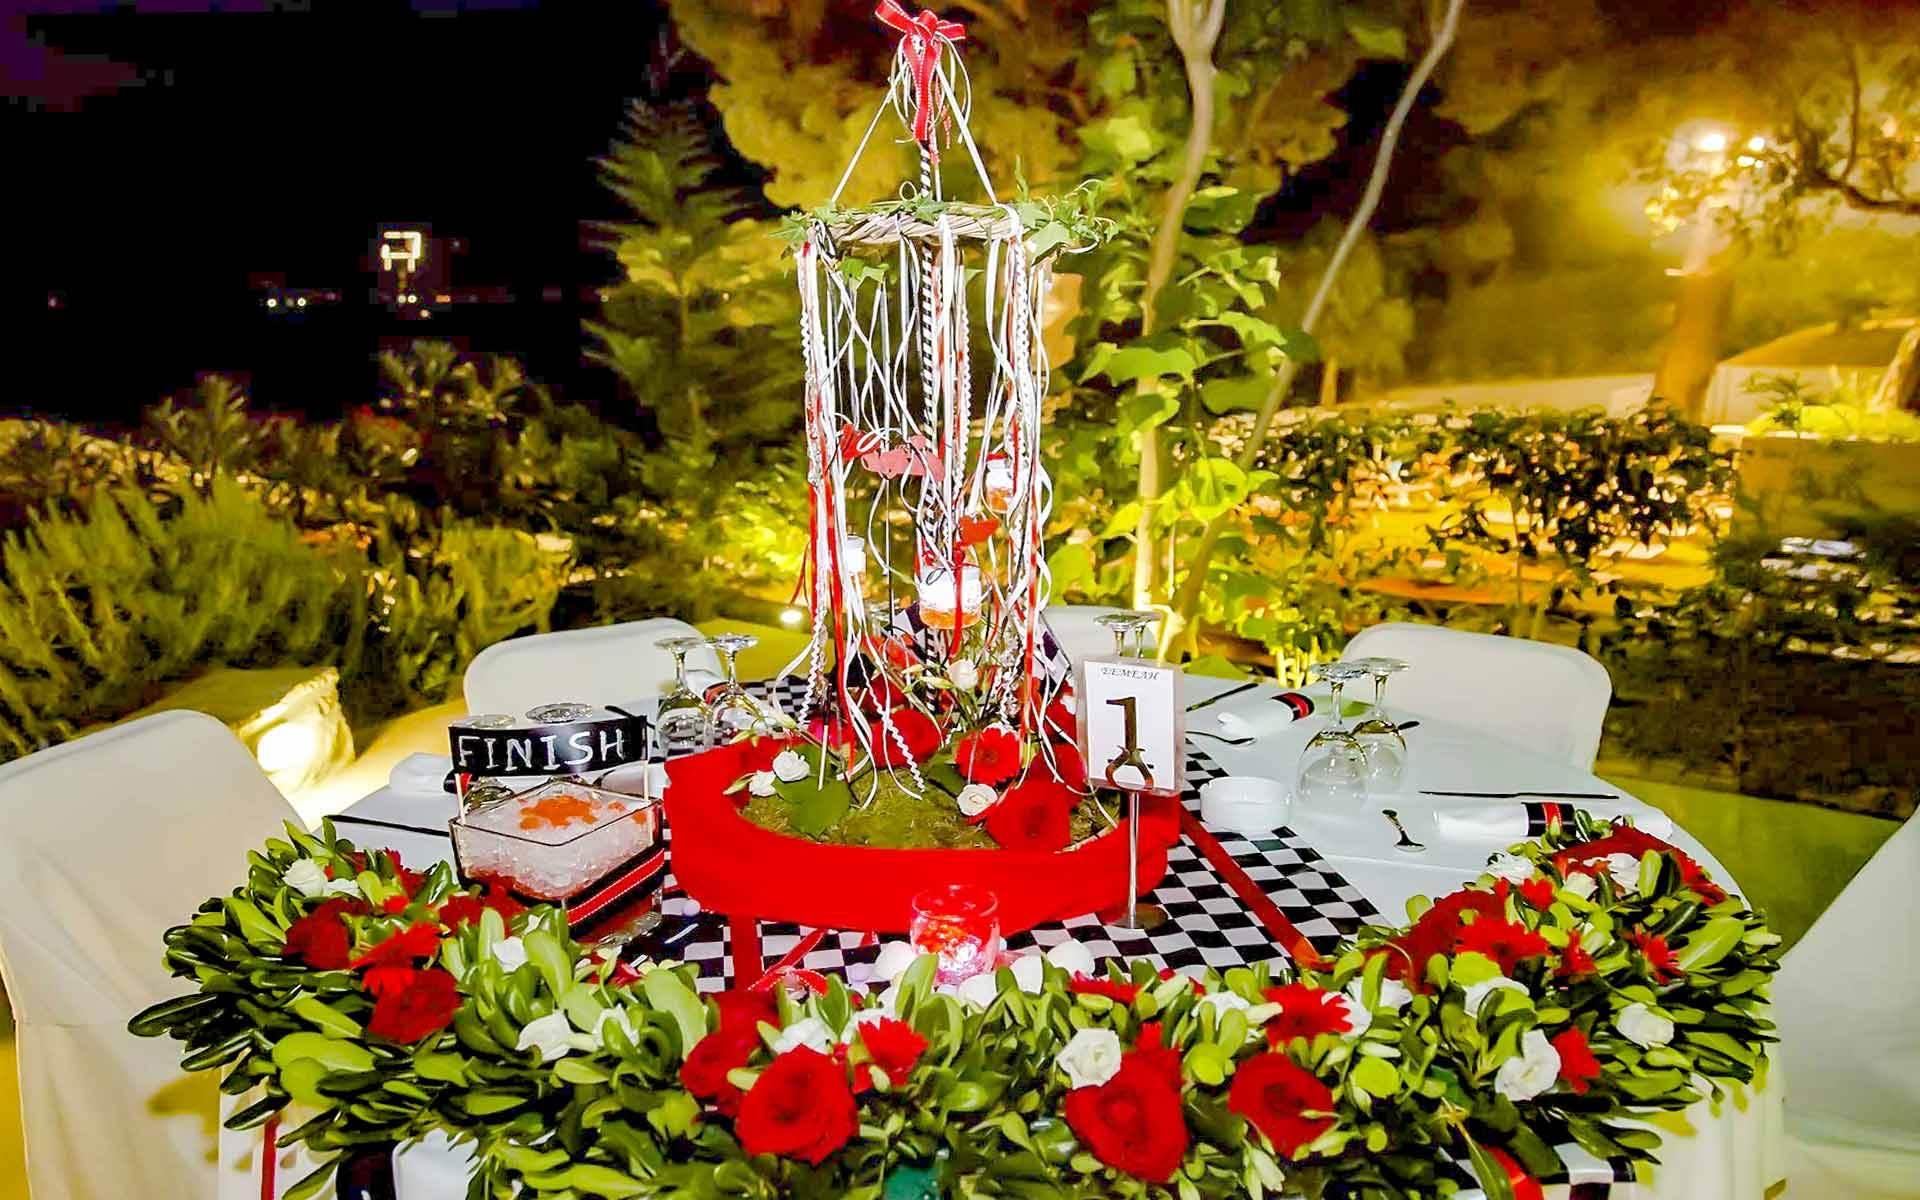 Find-The-Finish-Line-At-This-Race-Car-Themed-Reception